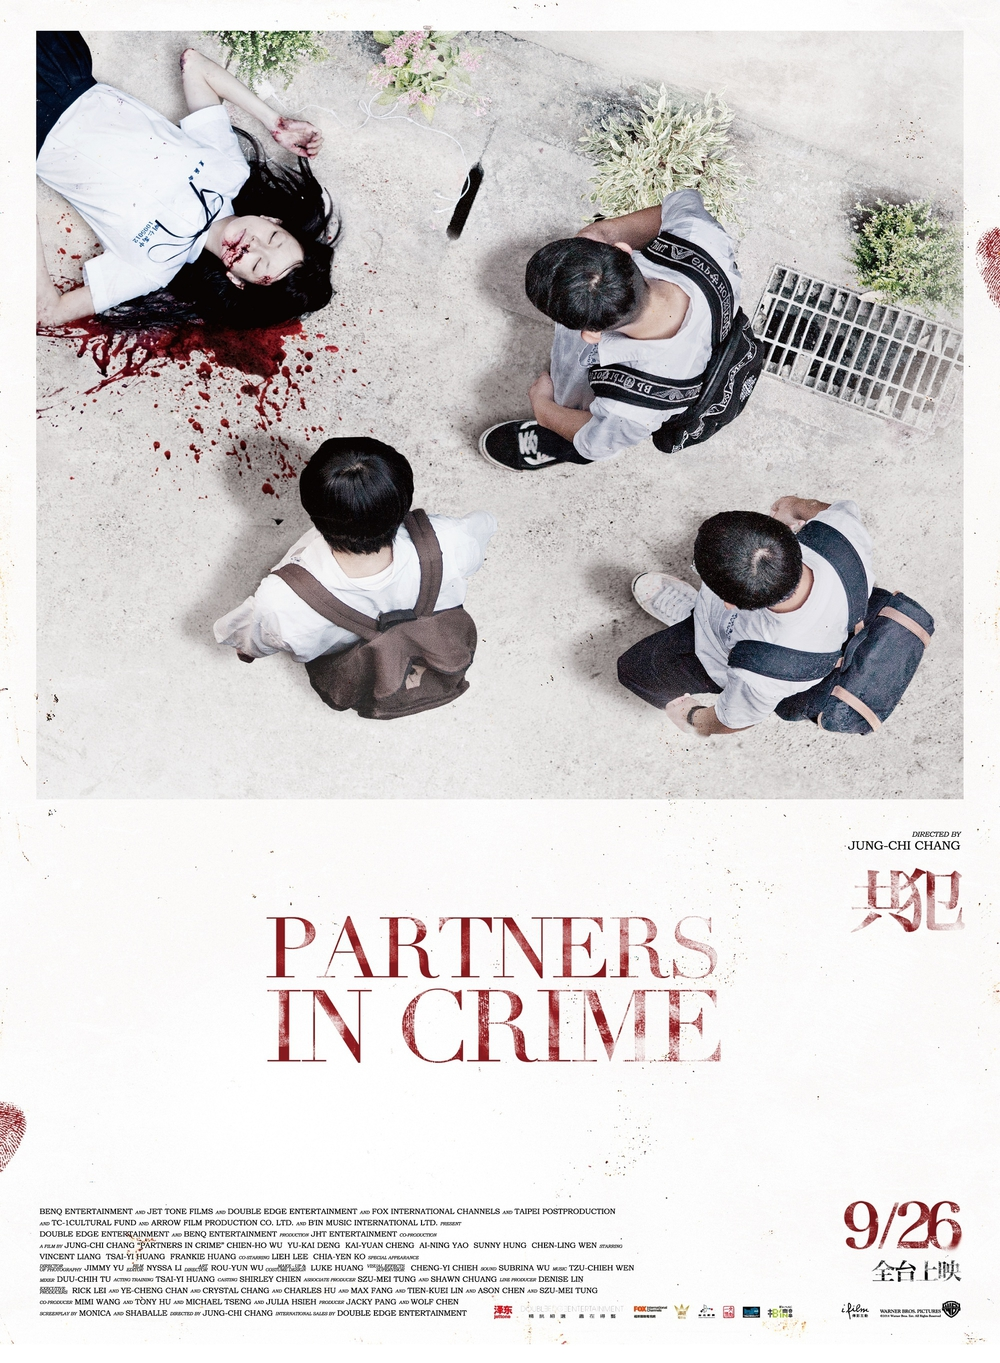 'PARTNERS IN CRIME' (2014): A FILM BY CHANG JUNG-CHI